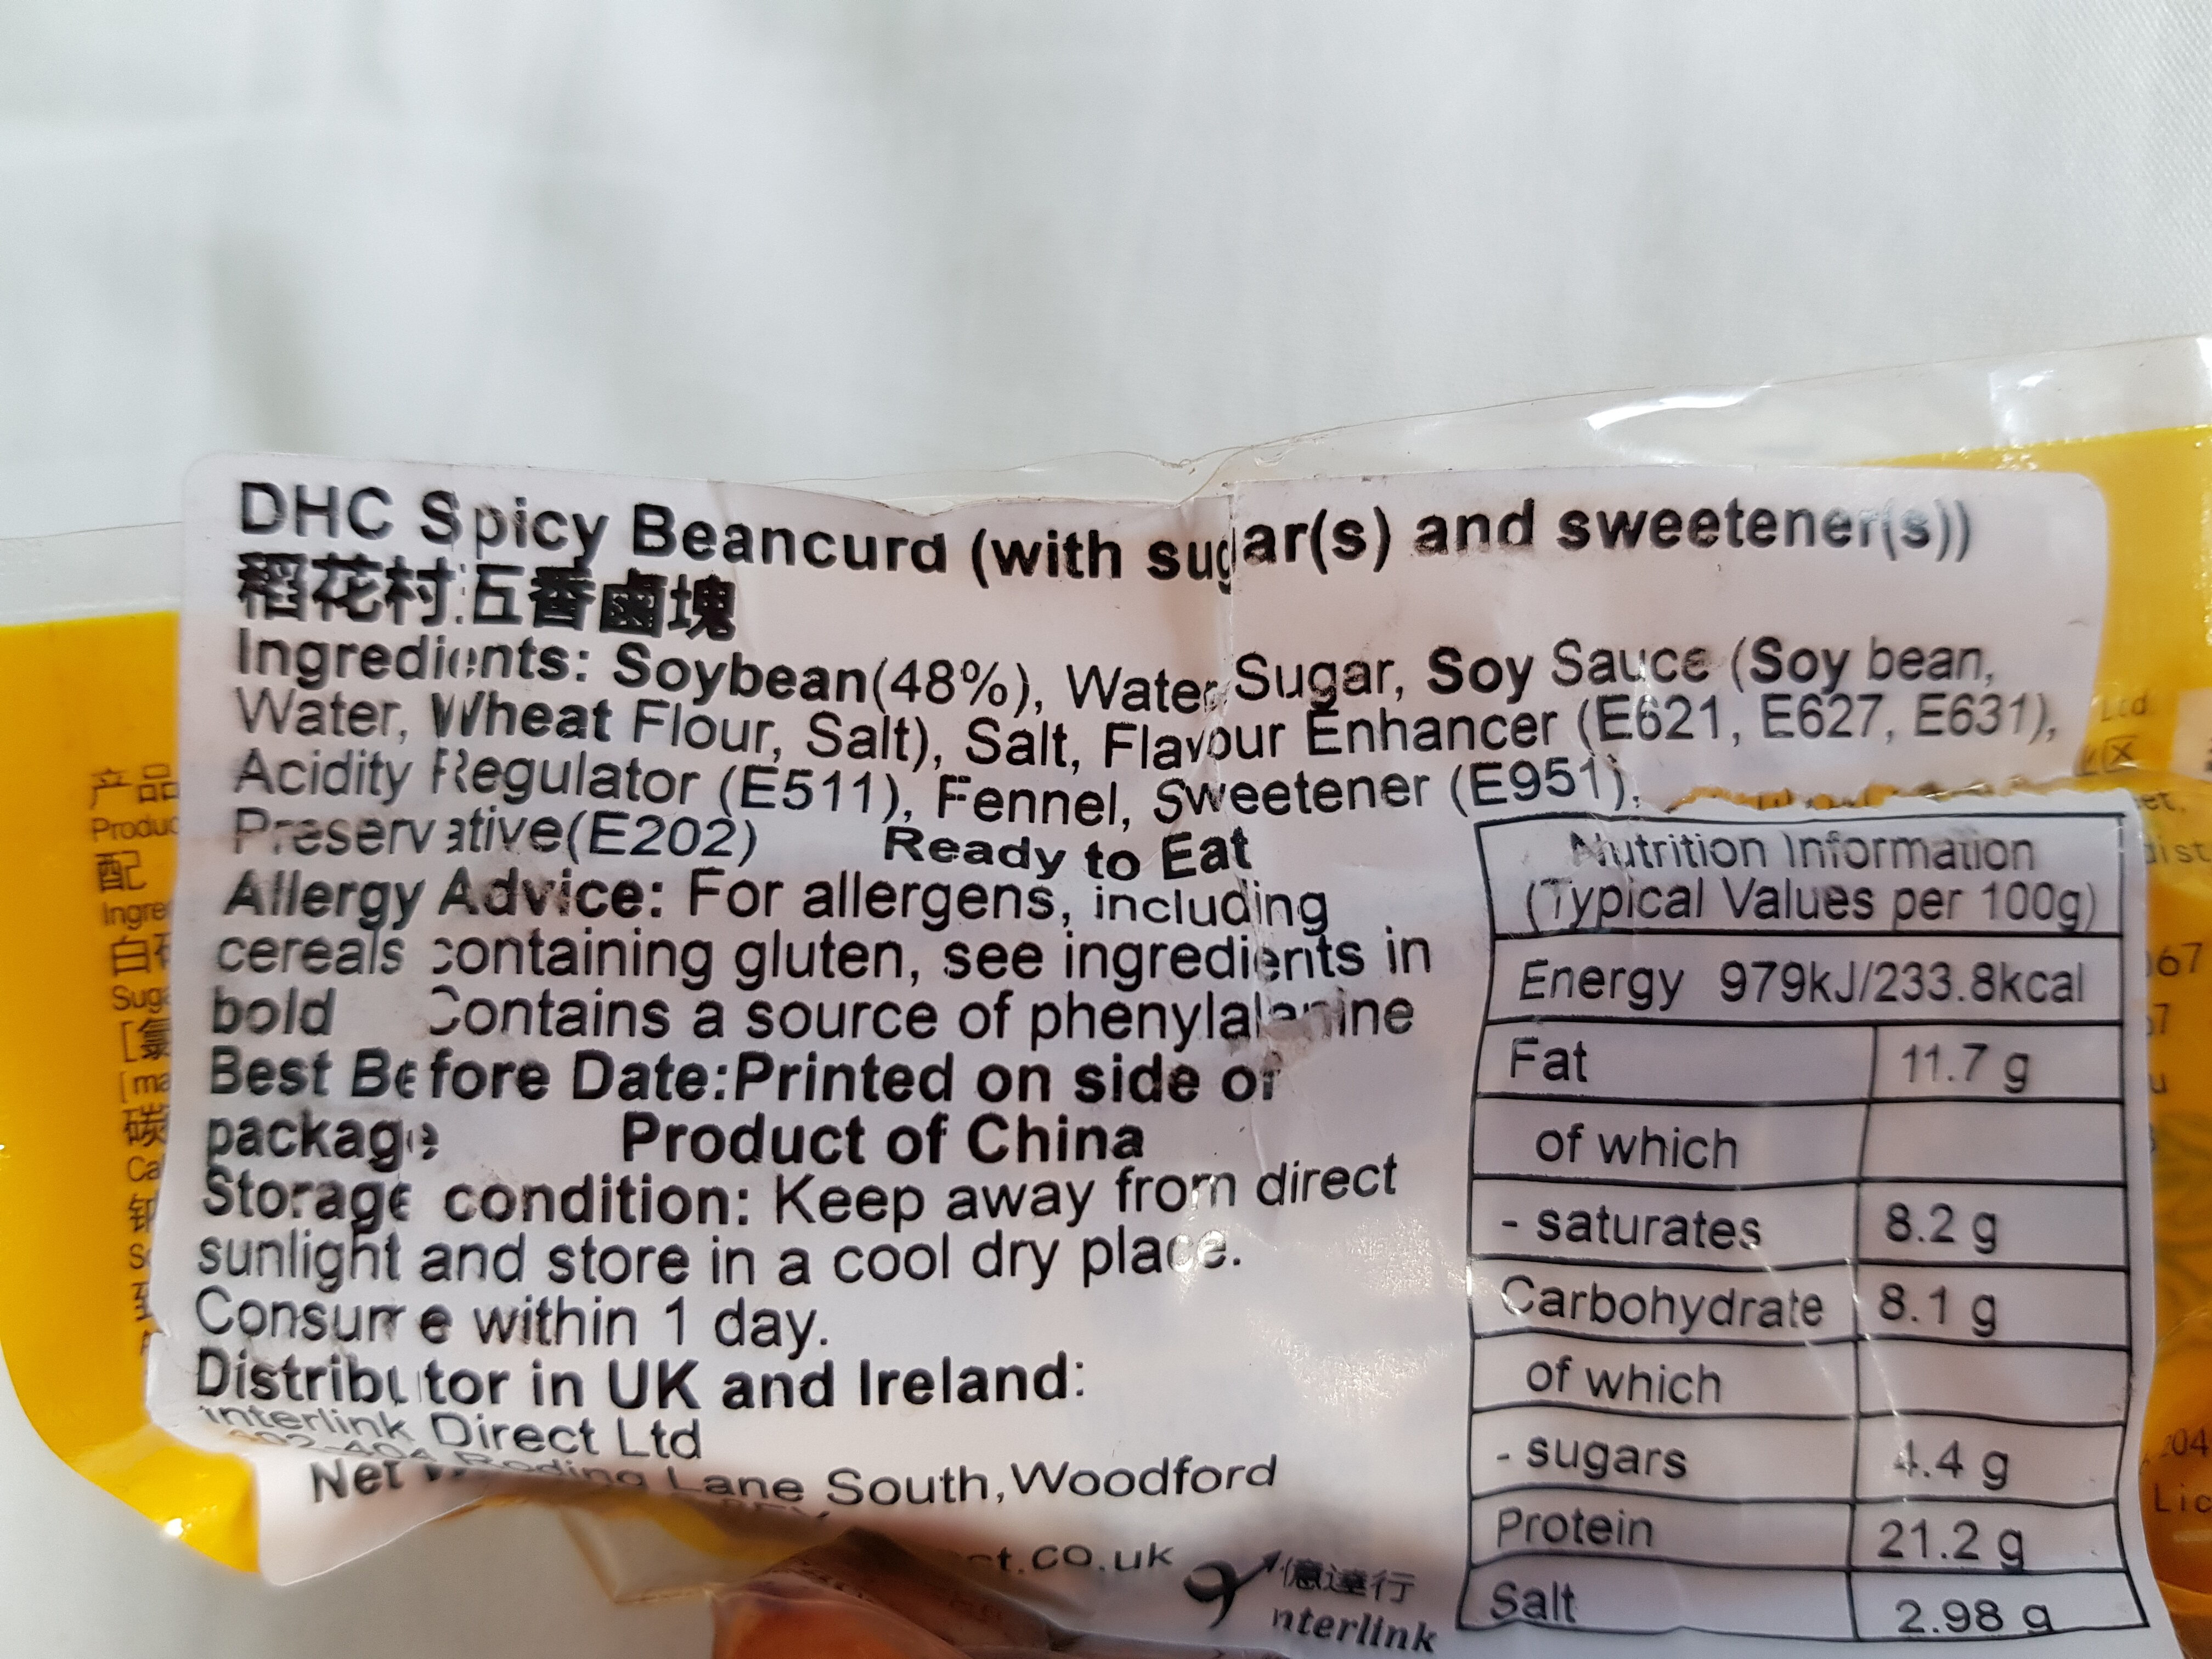 DHC Spicy Beancurd (with sugar(s) and sweetener(s)) - Ingredients - en